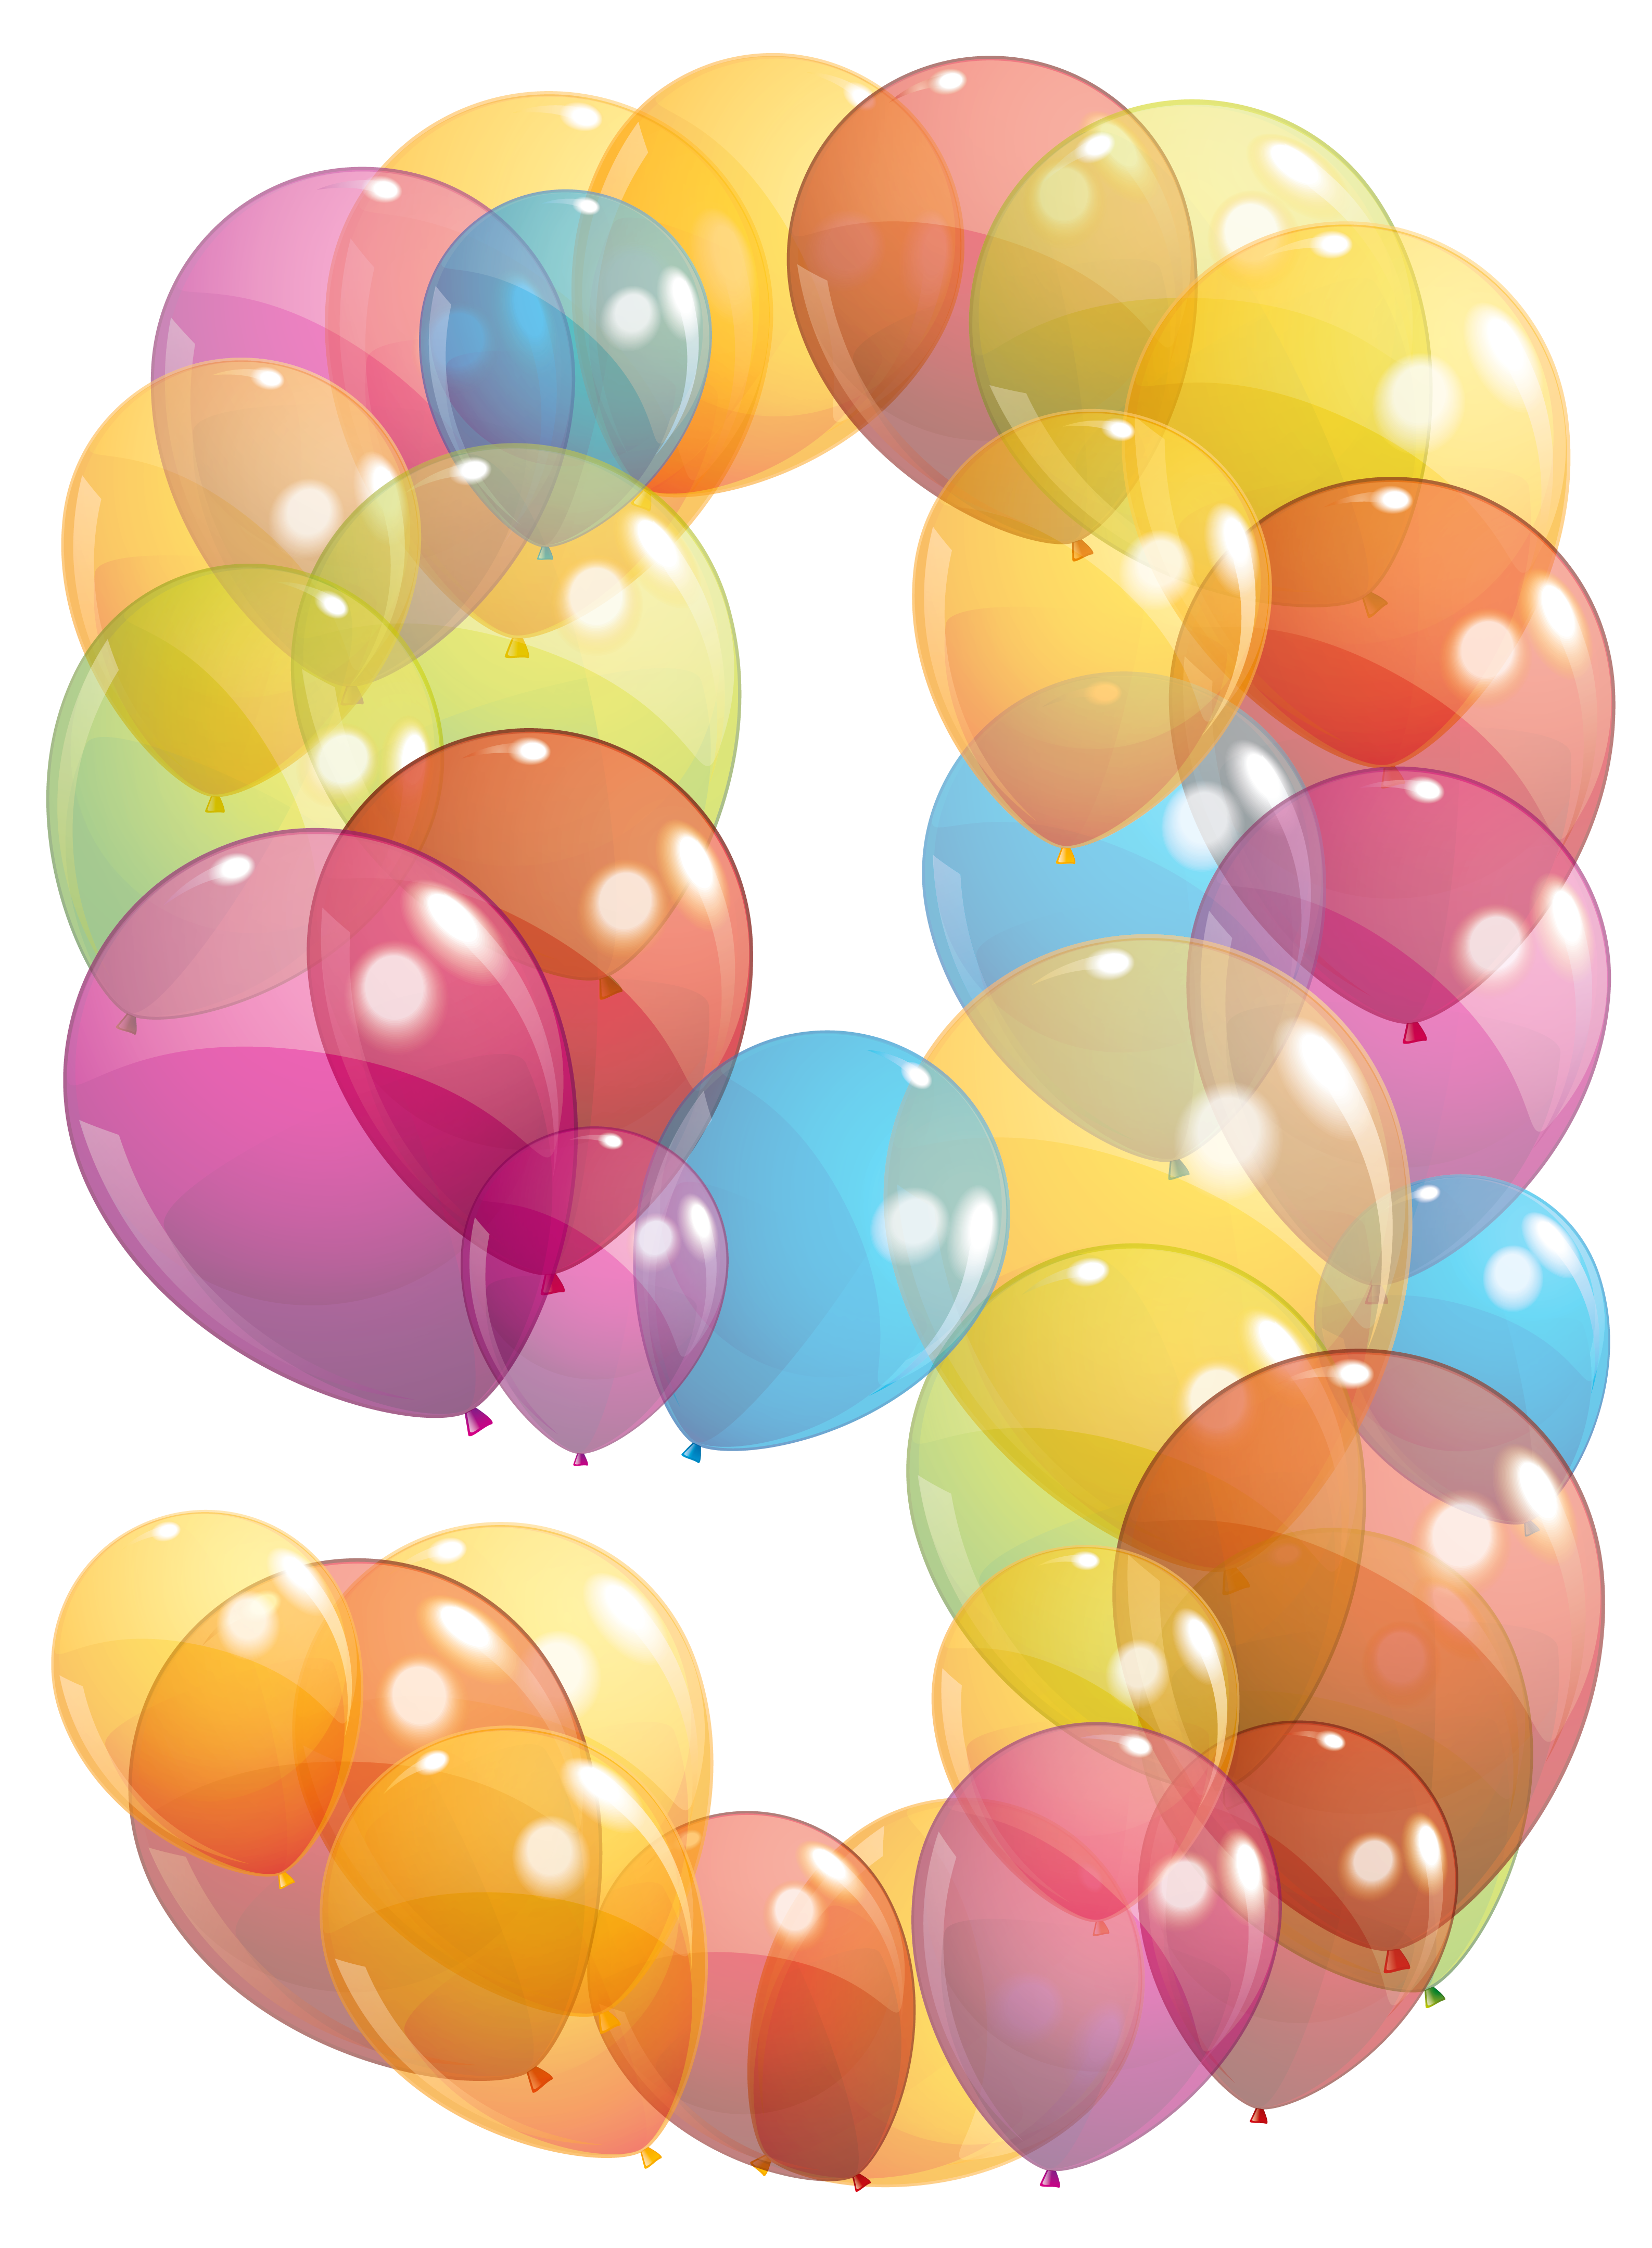 9 balloons clipart jpg free download Pin by Валентина on Цыфры | Balloons, Clipart images, Clip art jpg free download